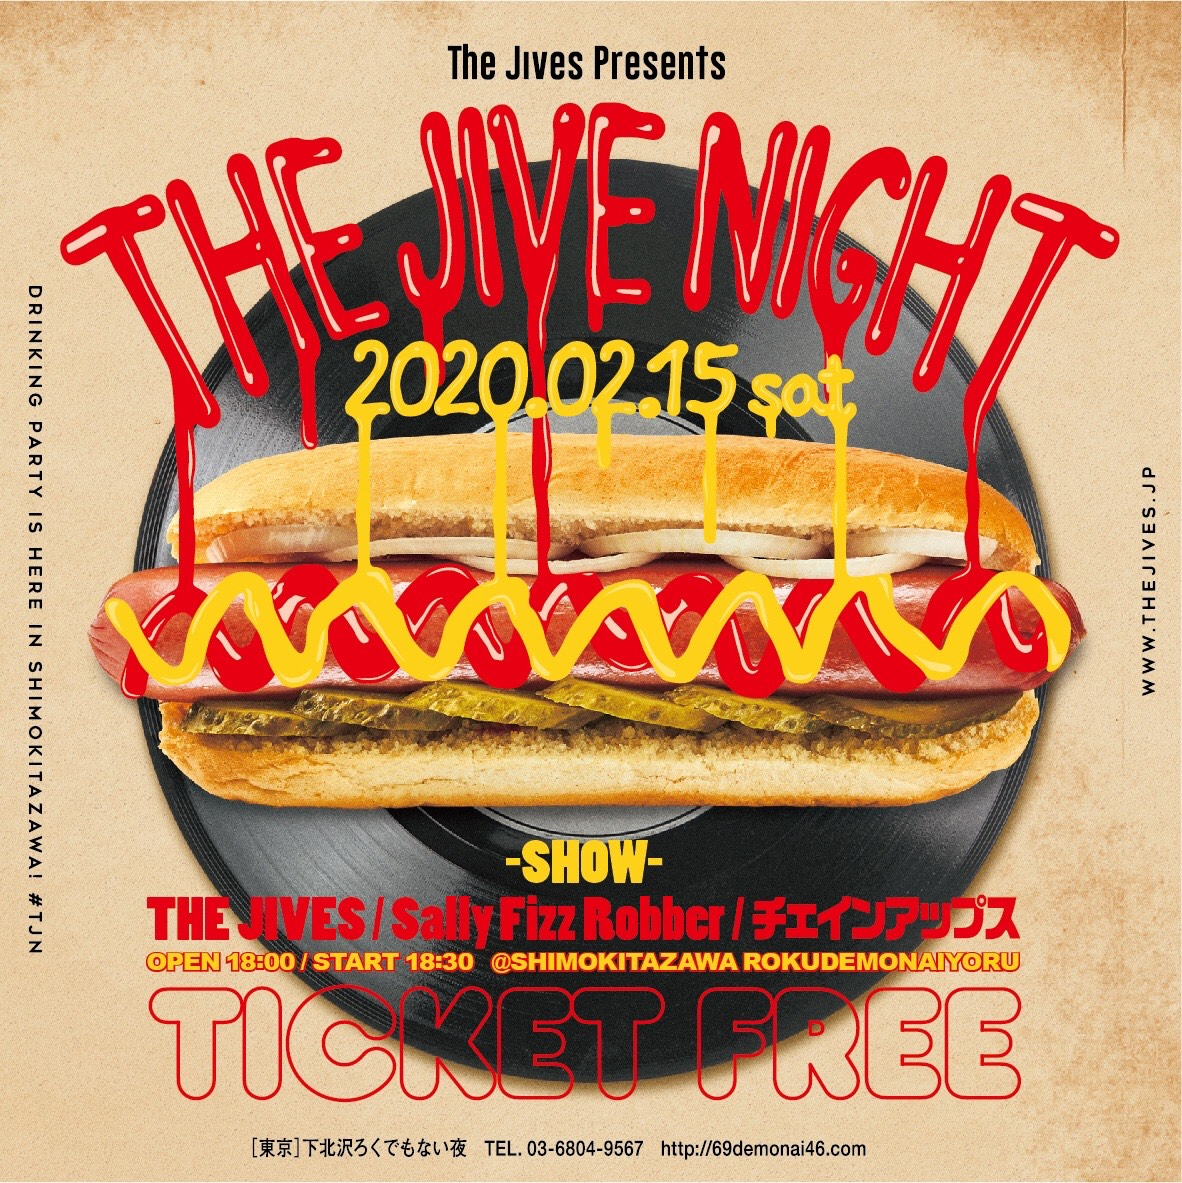 THE JIVES presents THE JIVE NIGHT